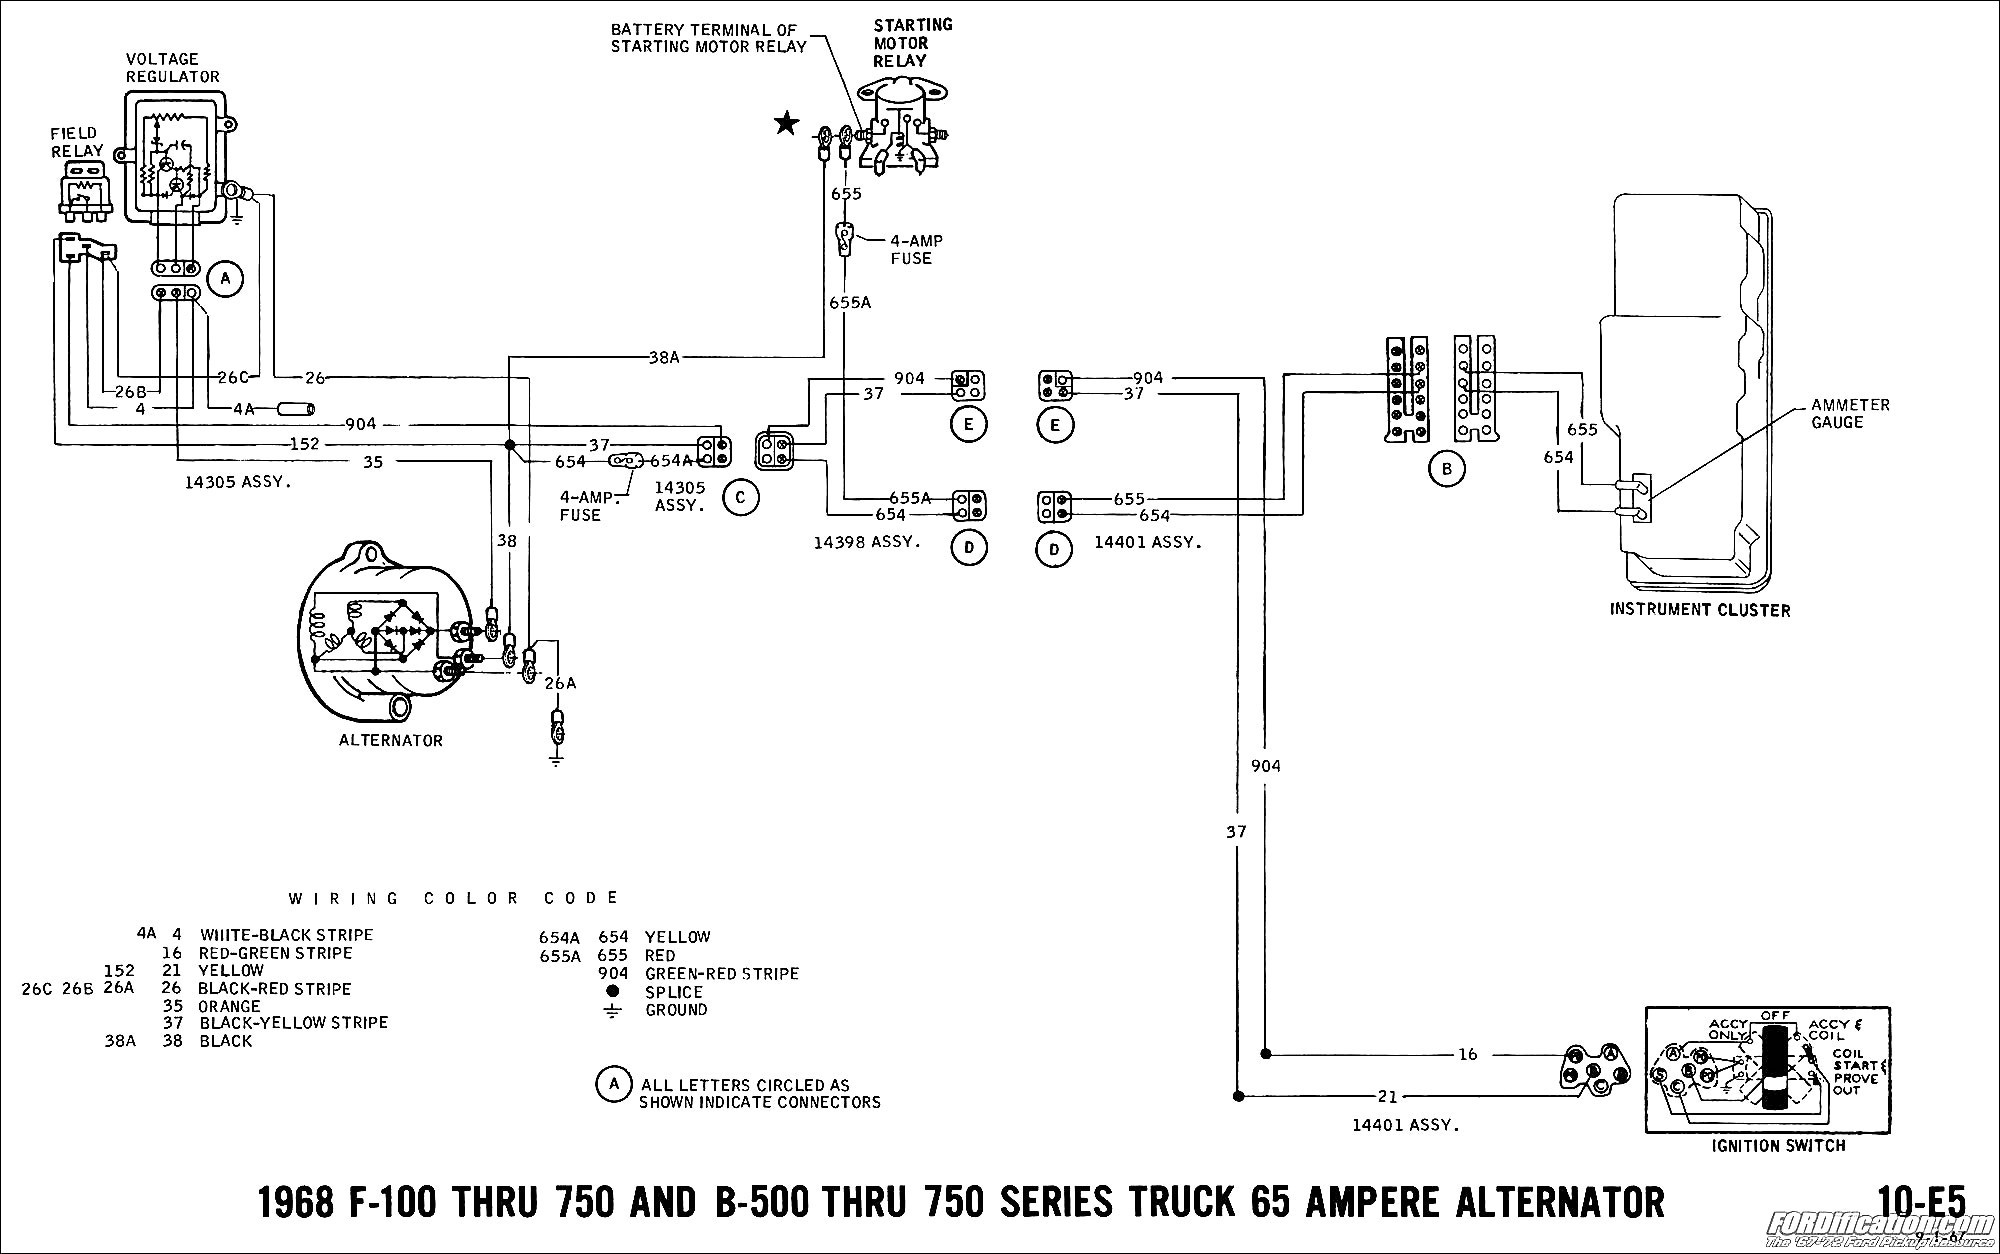 Ford Tractor 6610 Alternator Wiring Diagram Starting Know About 3600 Ford  Tractor Starter Wiring Diagram Ford 3600 Tractor Wiring Schematic